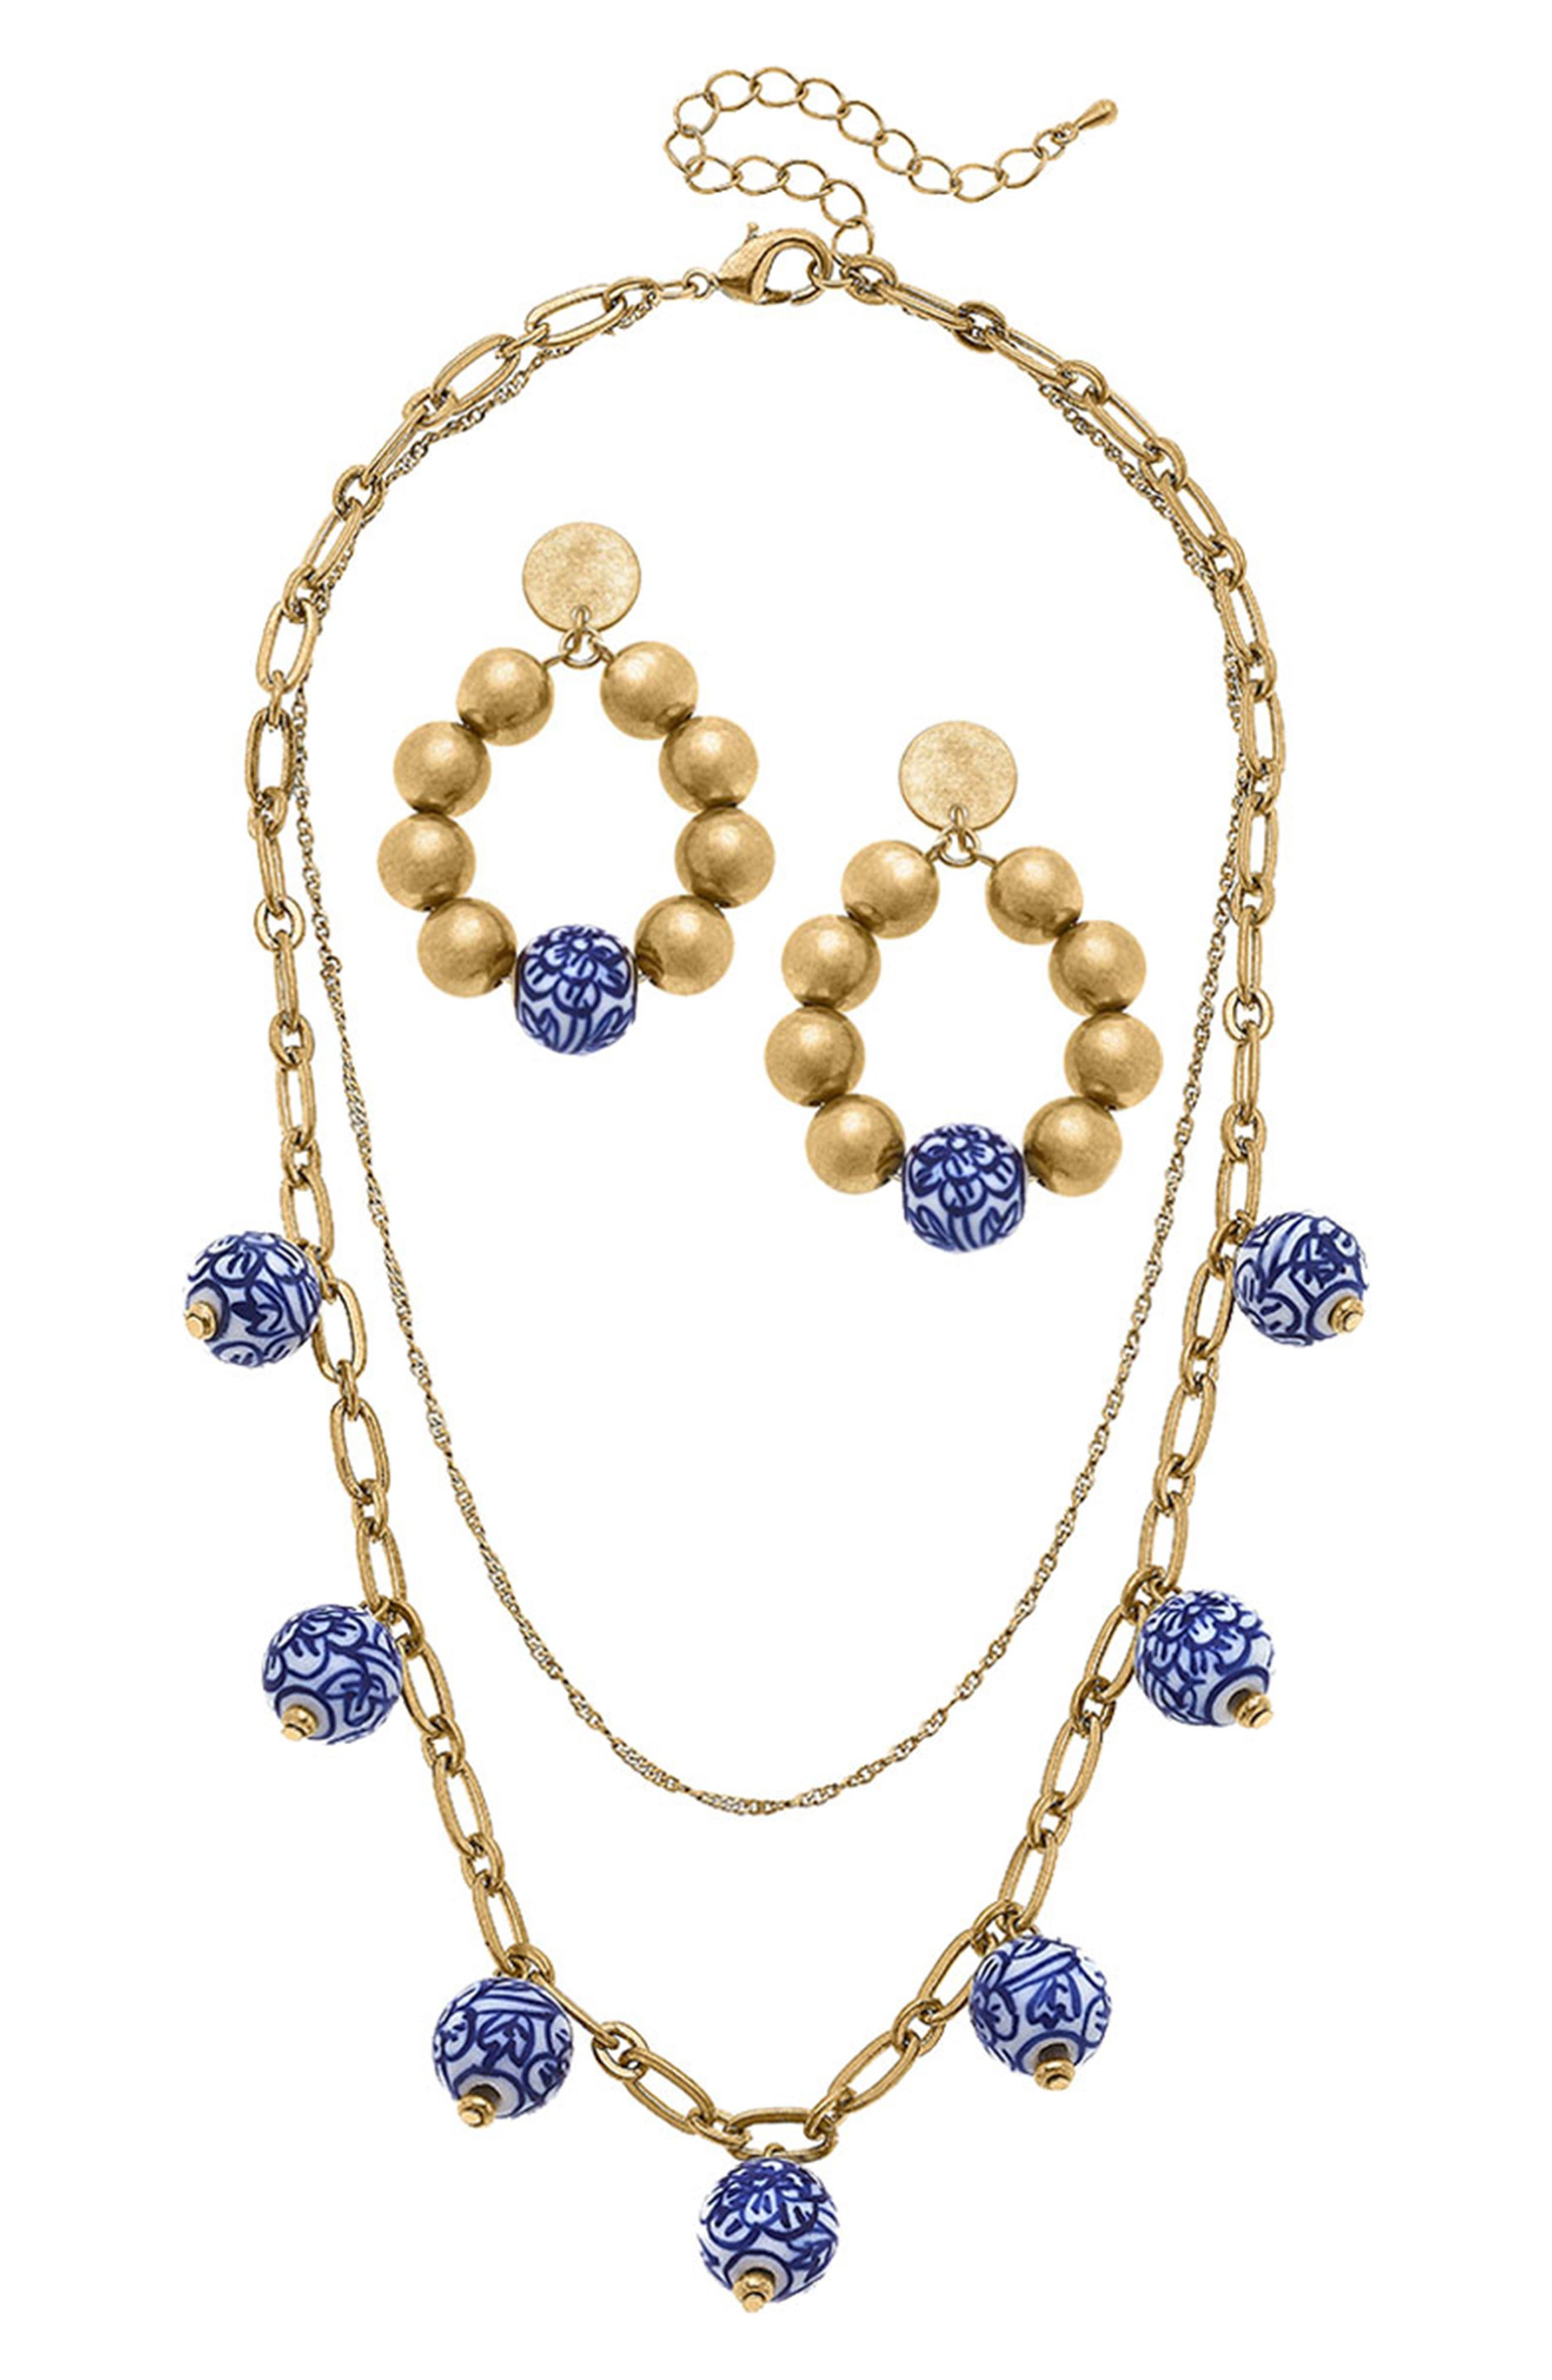 Two-Piece Chinoiserie Layered Necklace & Earrings Set